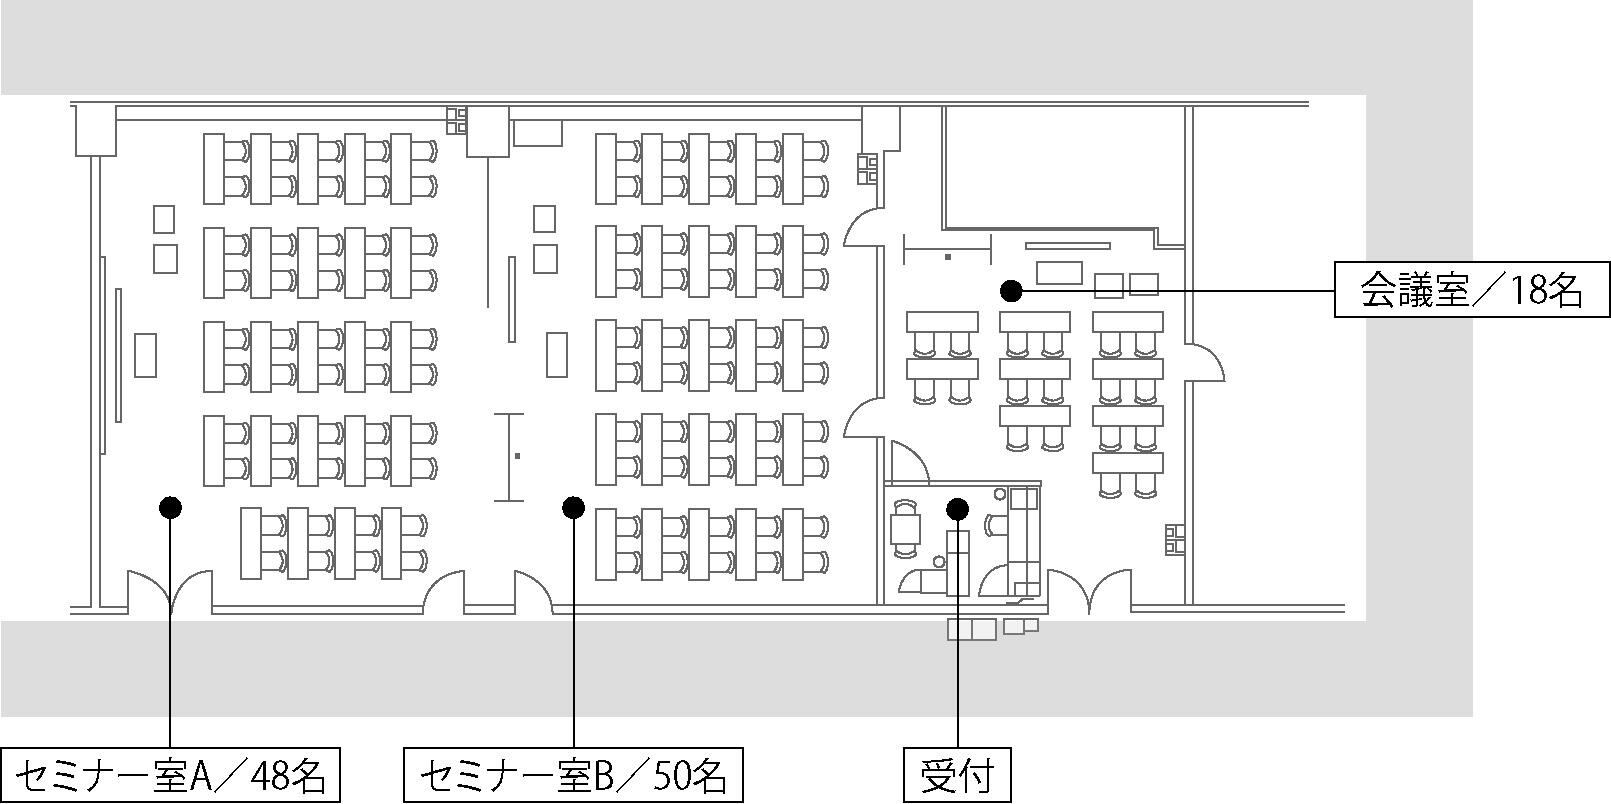 Kobe Sannnomiya Satellite layout.jpg